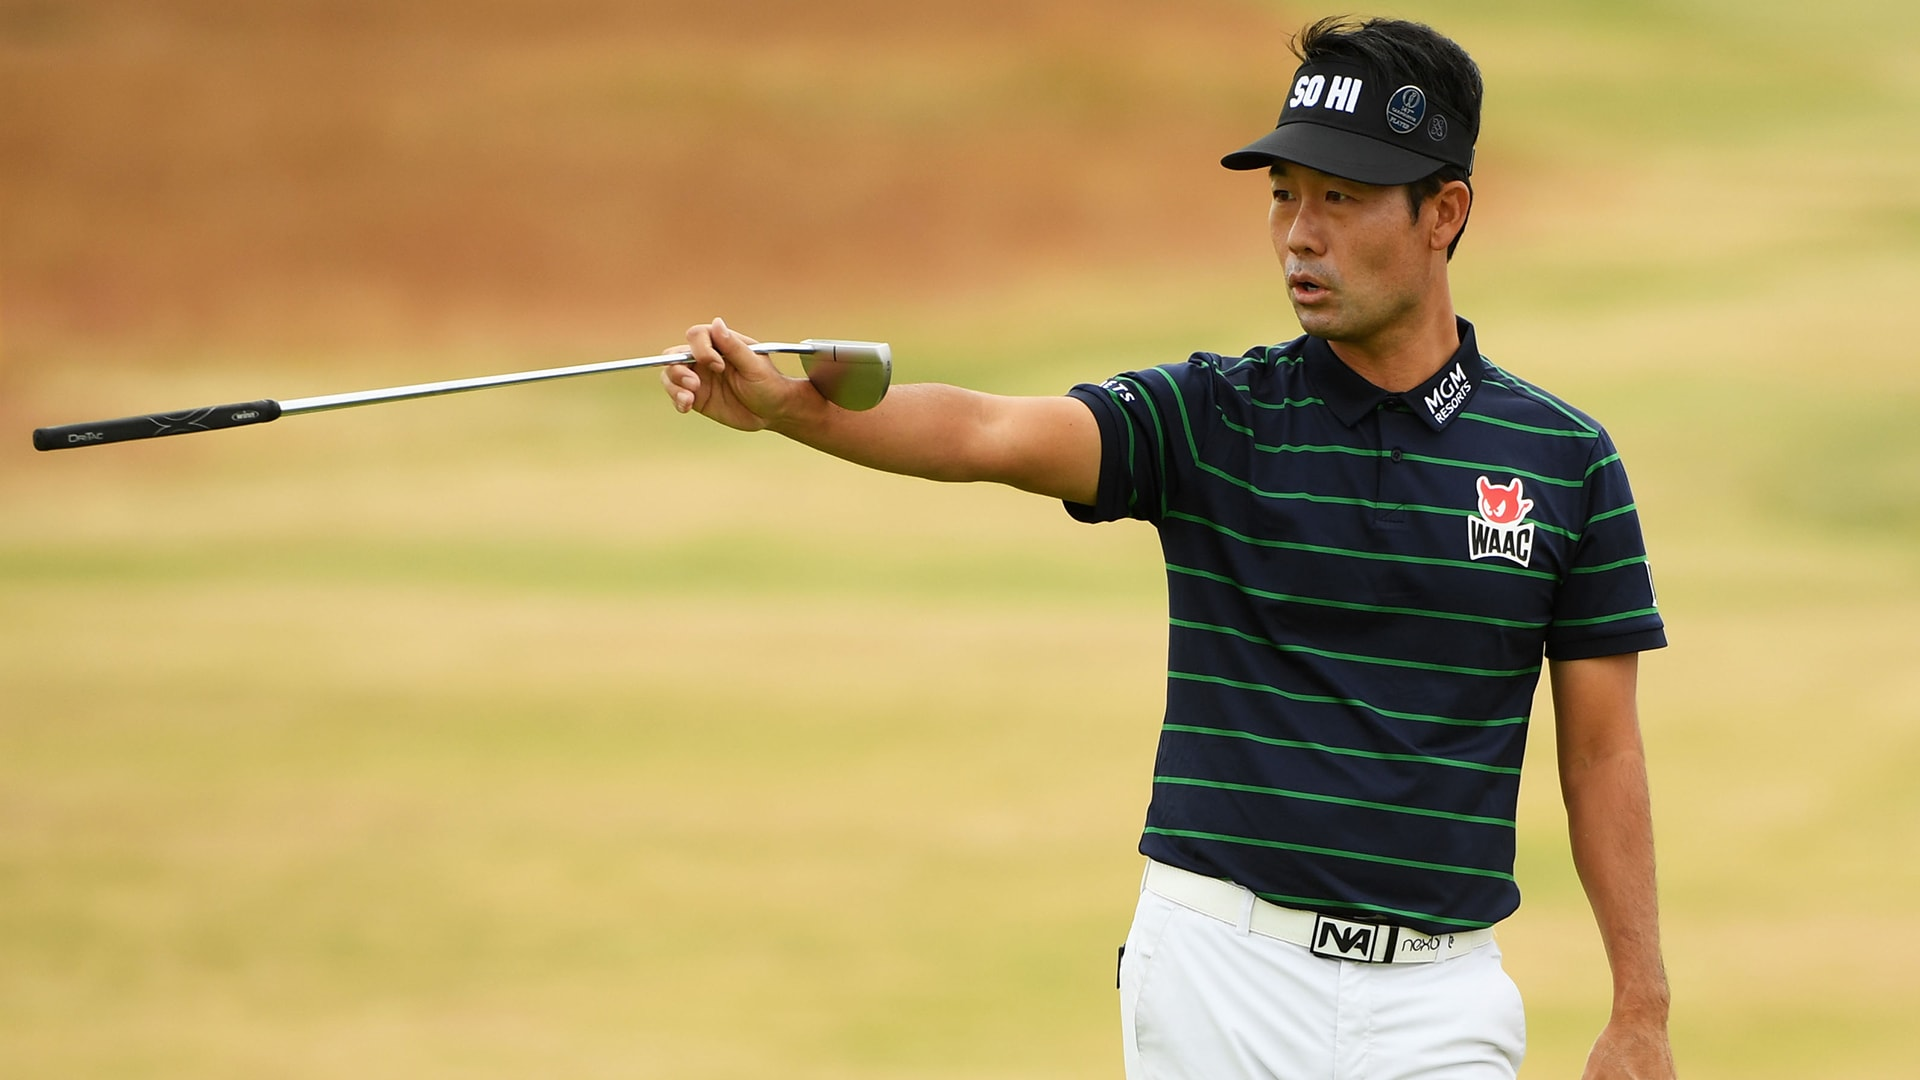 Kevin Na at the 2018 Open Championship.